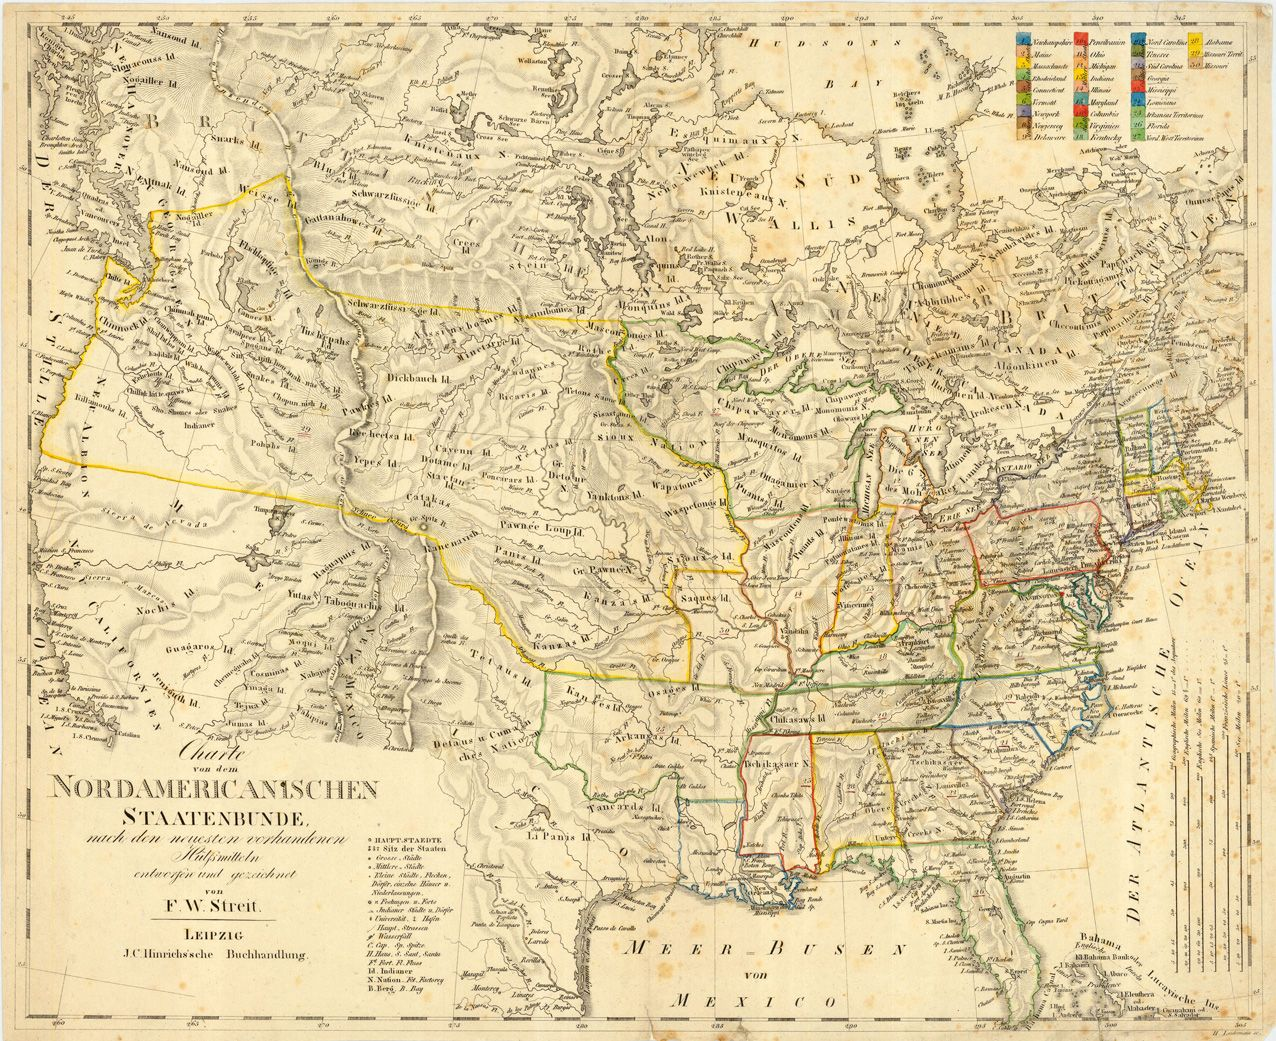 Fw Streit 1840 Usa Mapping In Pencil Map Us Map Old Maps - Us-map-1840